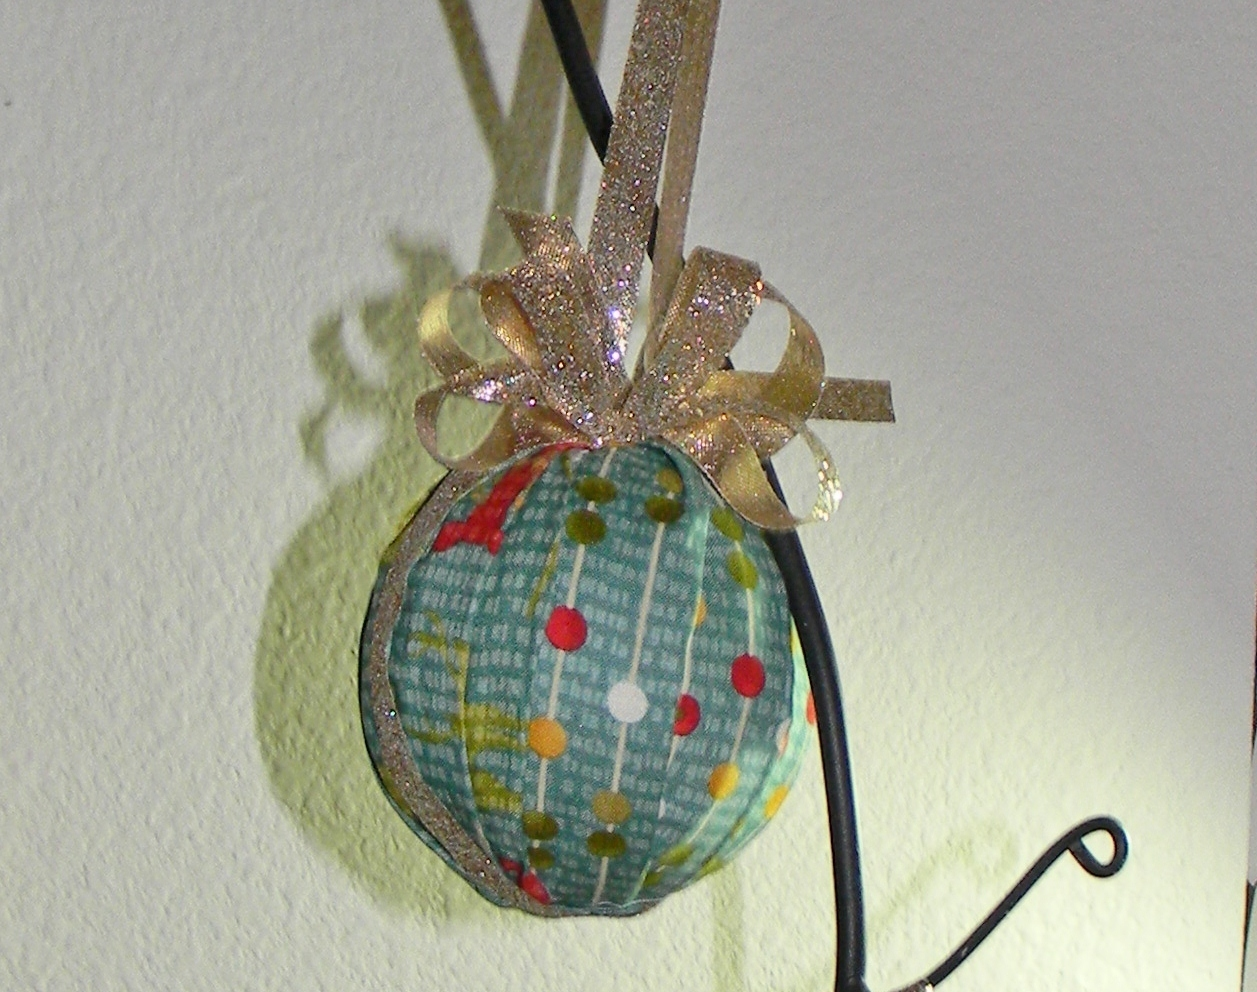 Sew Sweet Petunia: No-Sew Pleated Christmas Ornaments